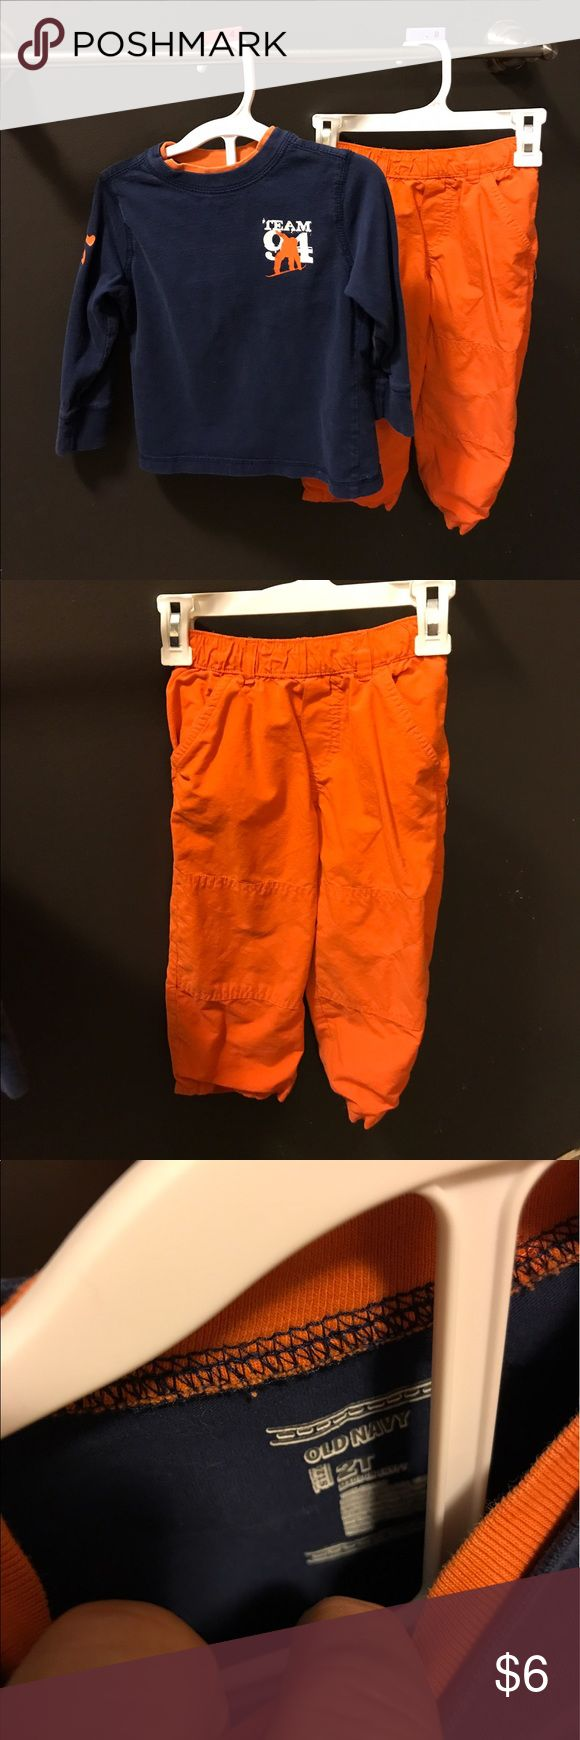 Old Navy Blue Tee & Circo Orange Lined Pants sz 2T Bundle of a boys long sleeves tee and lined pants size 2T. Old Navy navy blue tee with orange trim has a snowboarding theme. Front a figure and team 94. Right sleeve King of the Mountain. Back 103 with figure. Made in Egypt of 100% cotton. Circo orange pants have an elastic waist. Lining has pills in them from wash and wear. There are 2 pockets and knees look like they have patches on them. Made in Dominican Republic. Shell: 70% cotton…